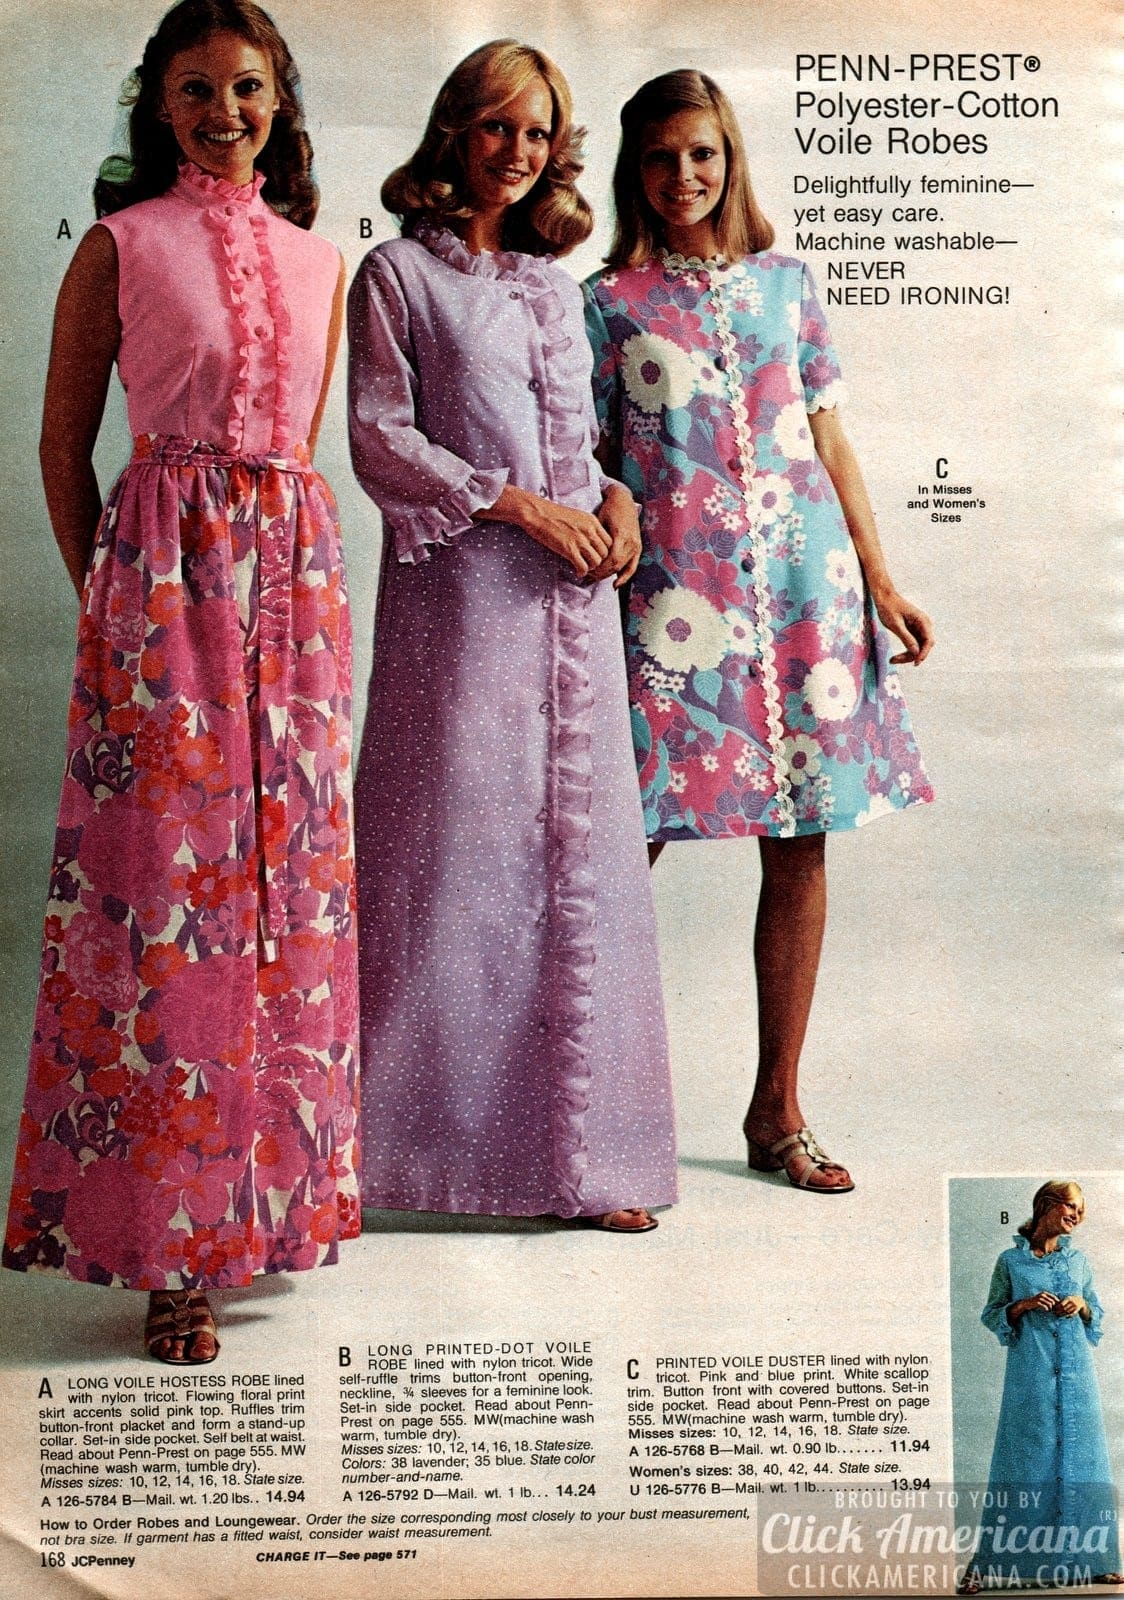 Retro robes for women from the 70s